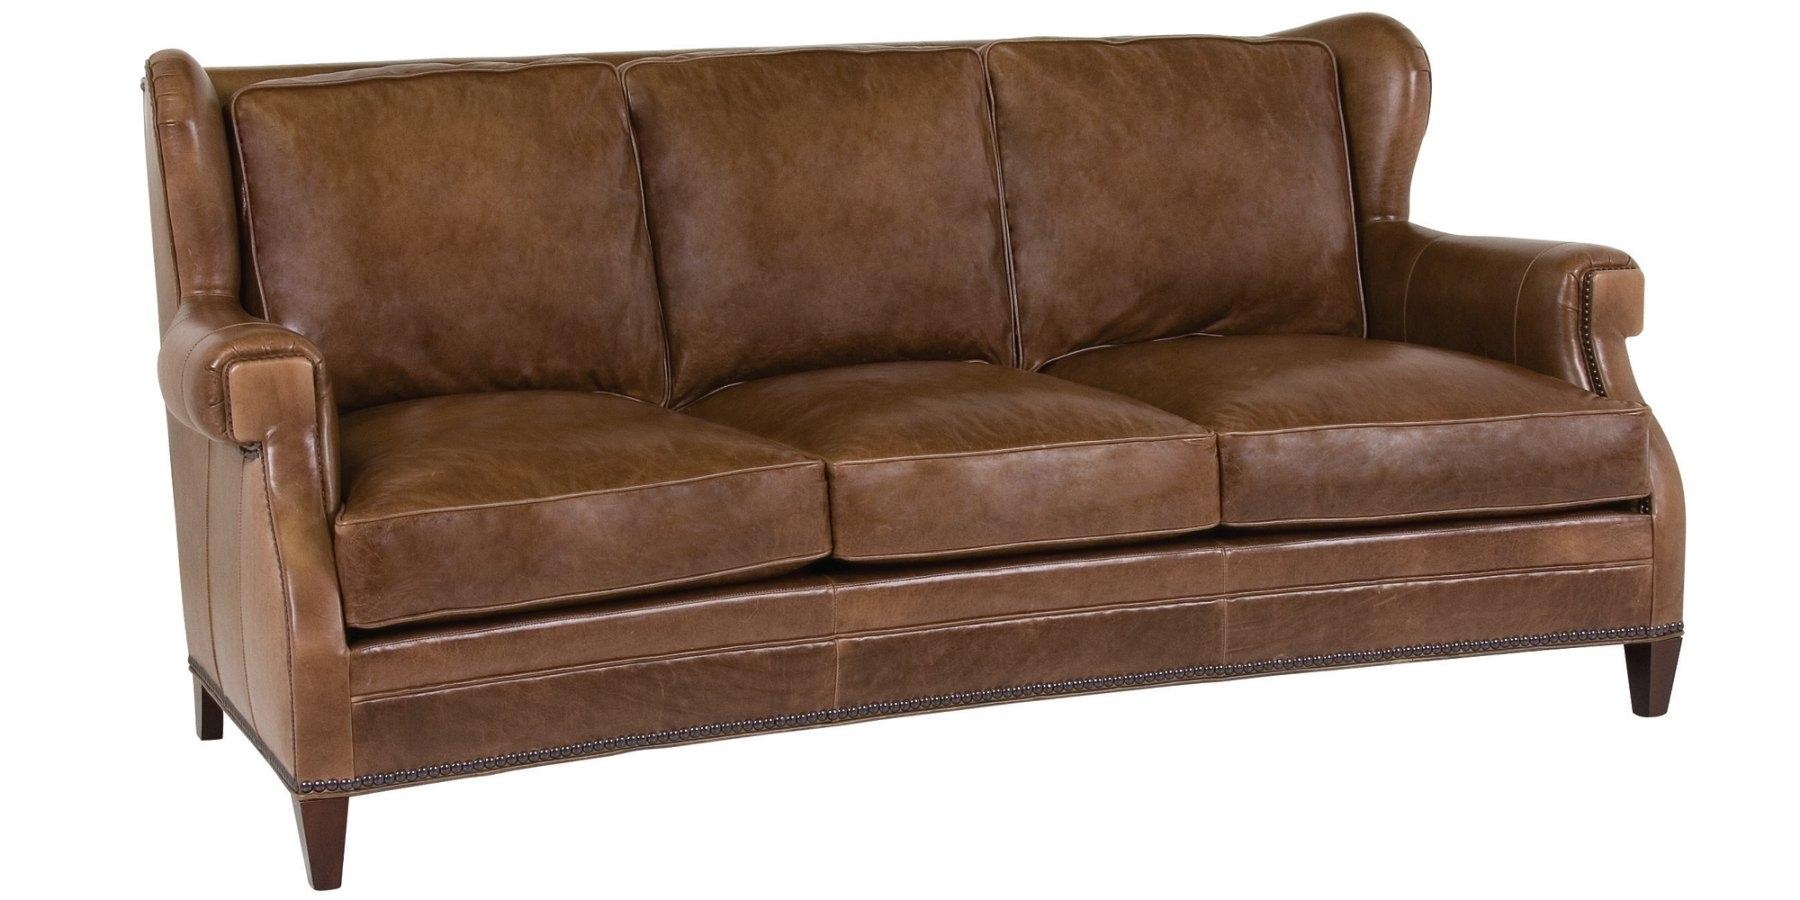 Leather Furniture | Club Furniture Pertaining To Brown Leather Sofas With Nailhead Trim (Image 10 of 20)